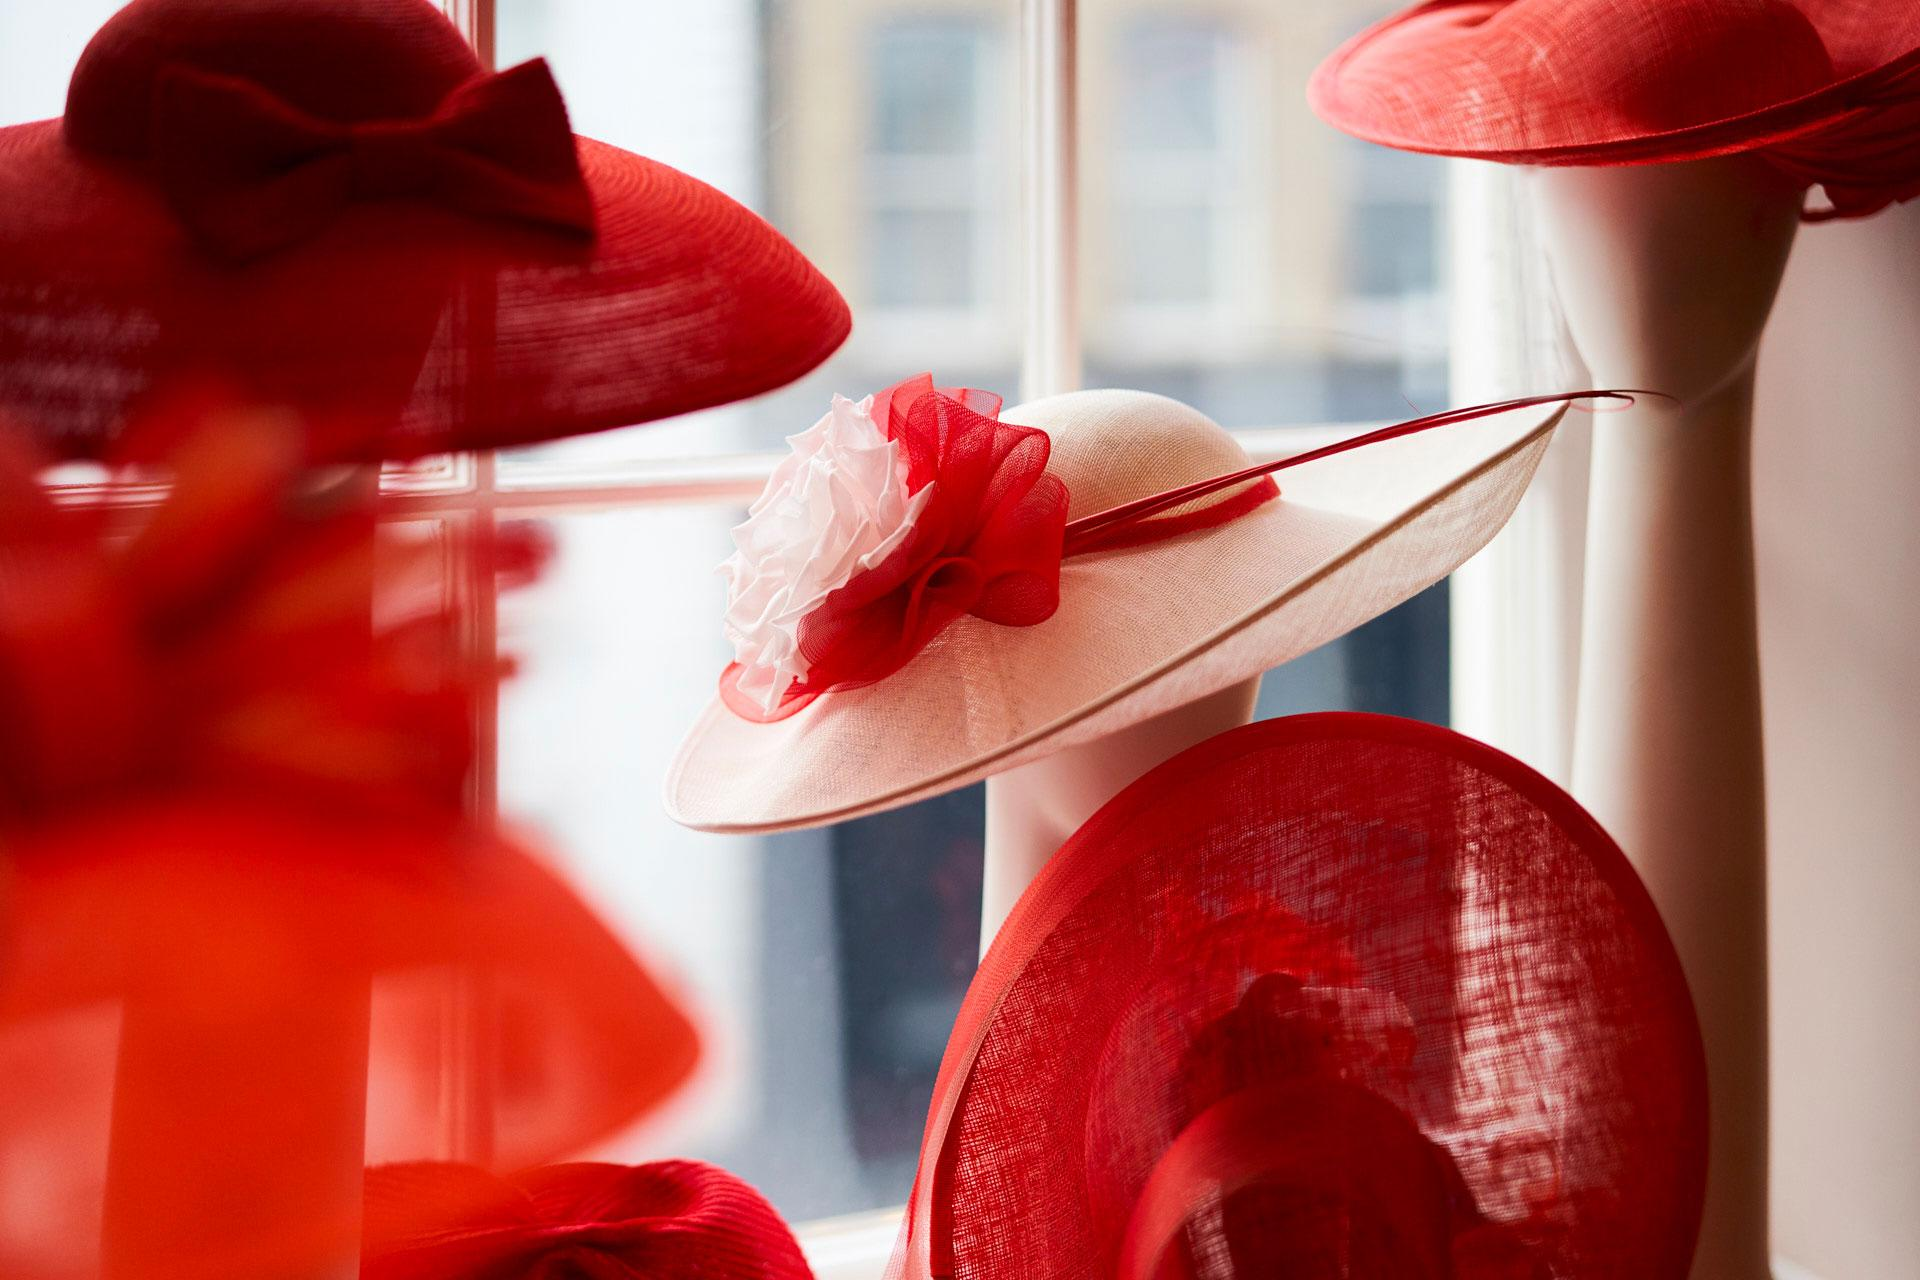 millinery department at Fenwick